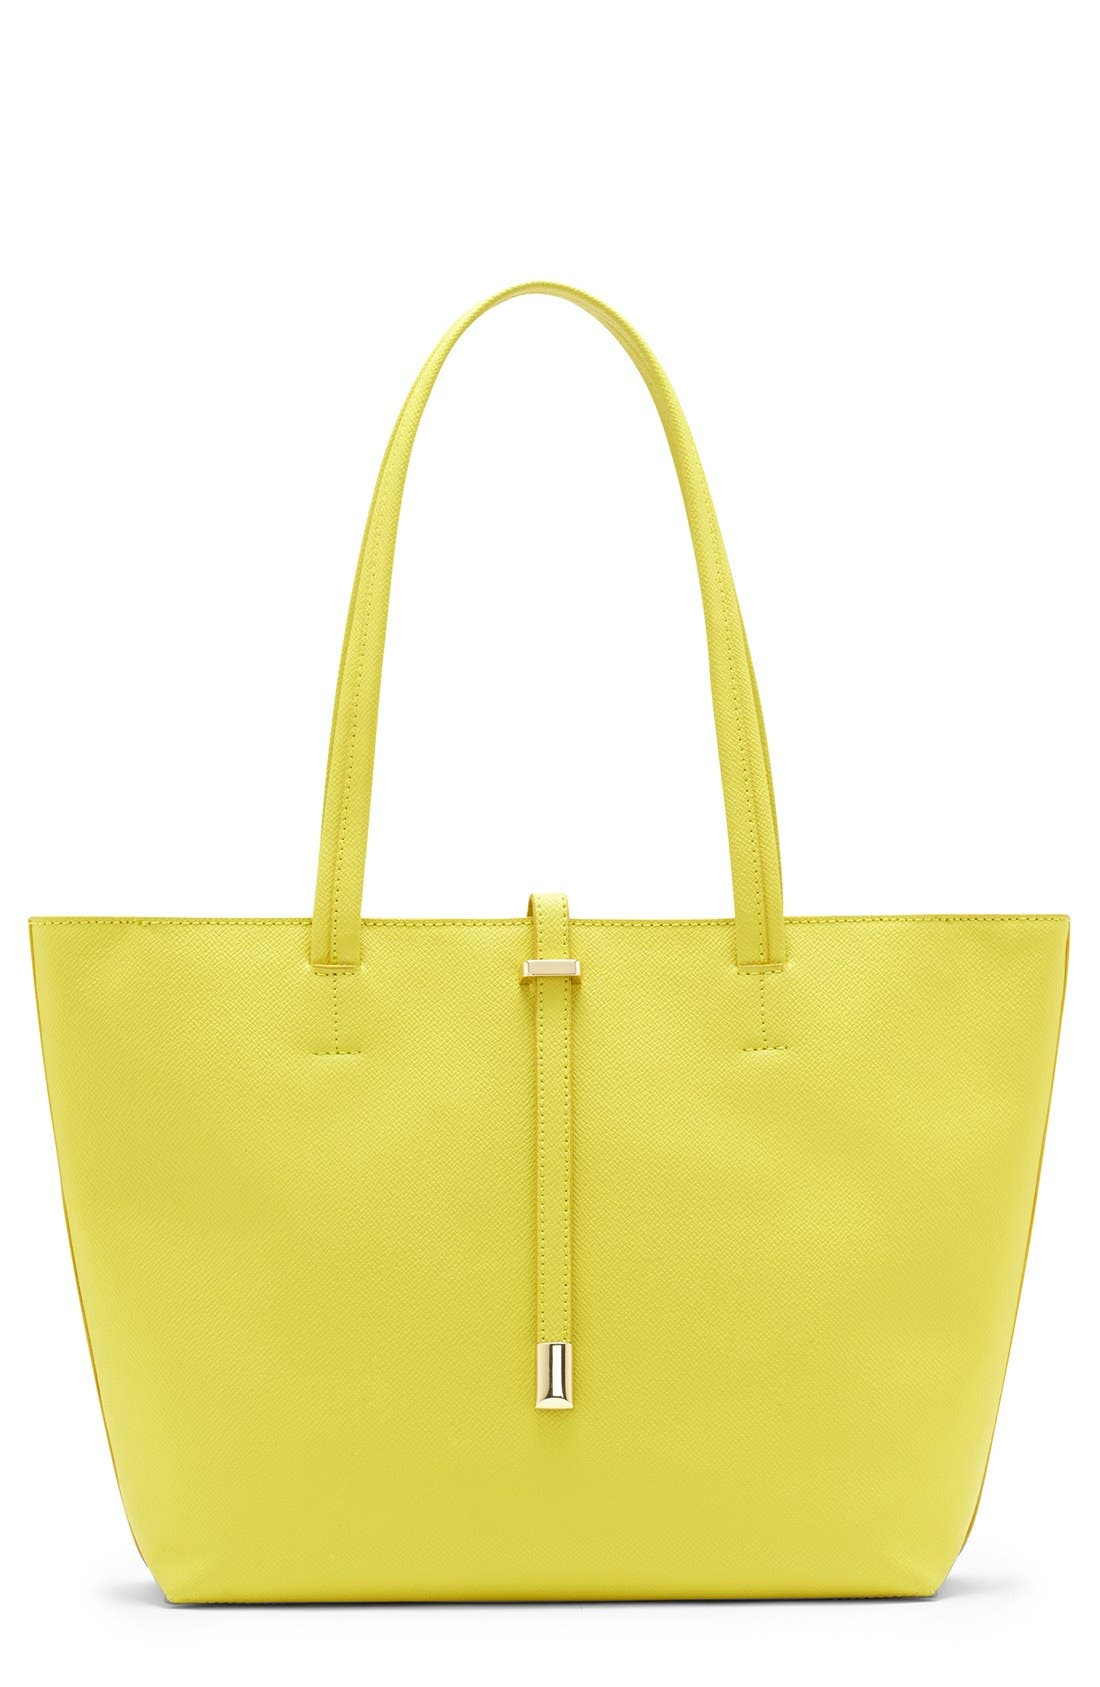 Alternate Image 1 Selected - Vince Camuto 'Leila - Small' Leather Tote